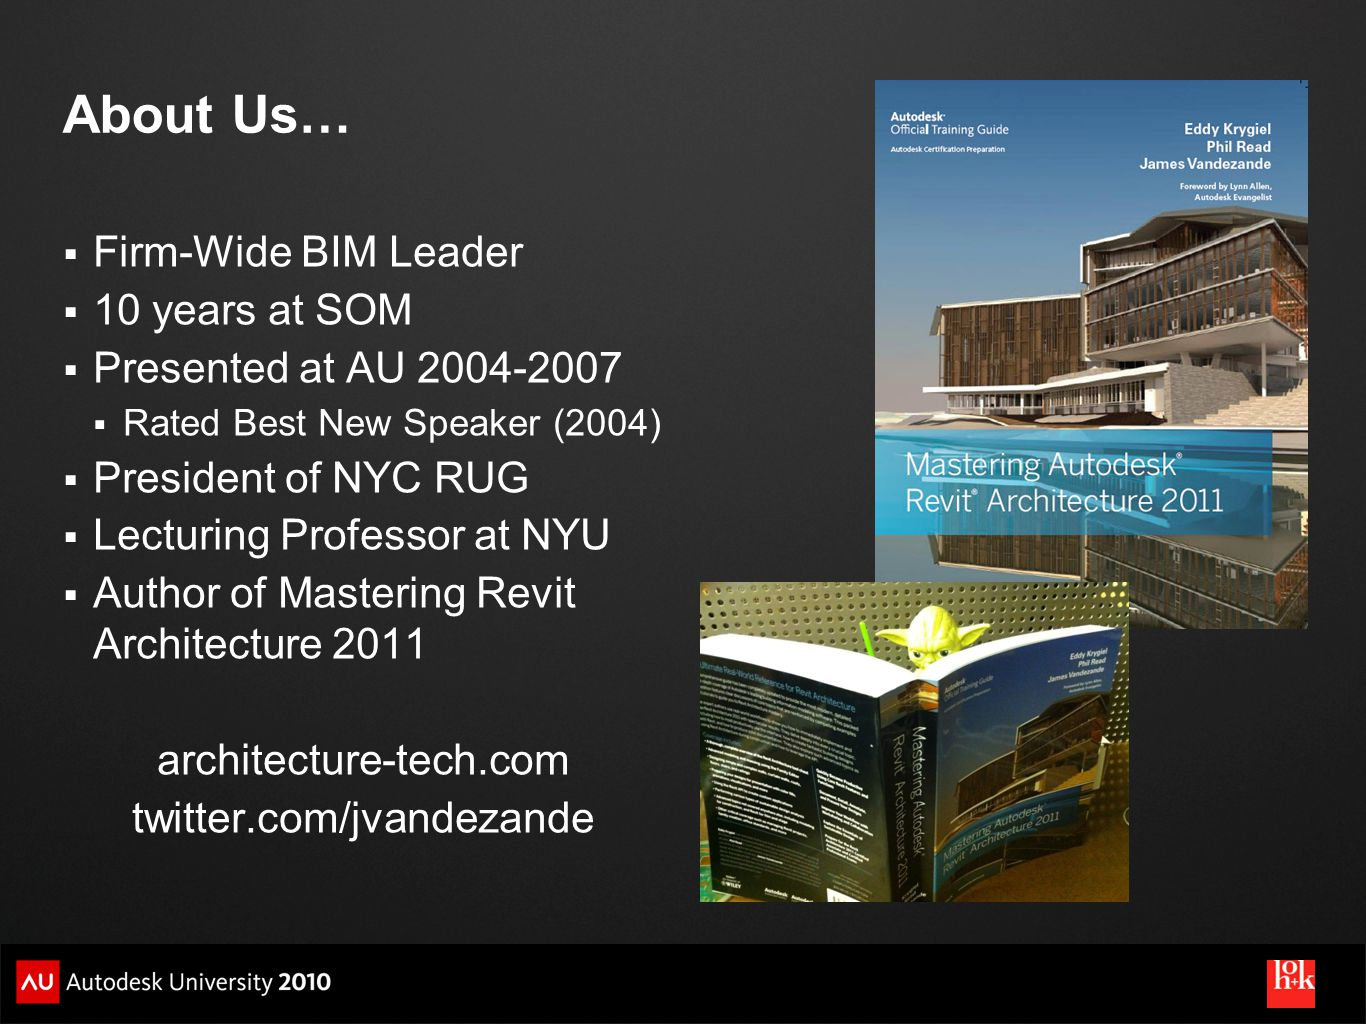 About Us… Firm-Wide BIM Leader 10 years at SOM Presented at AU 2004-2007 Rated Best New Speaker (2004) President of NYC RUG Lecturing Professor at NYU Author of Mastering Revit Architecture 2011 architecture-tech.com twitter.com/jvandezande